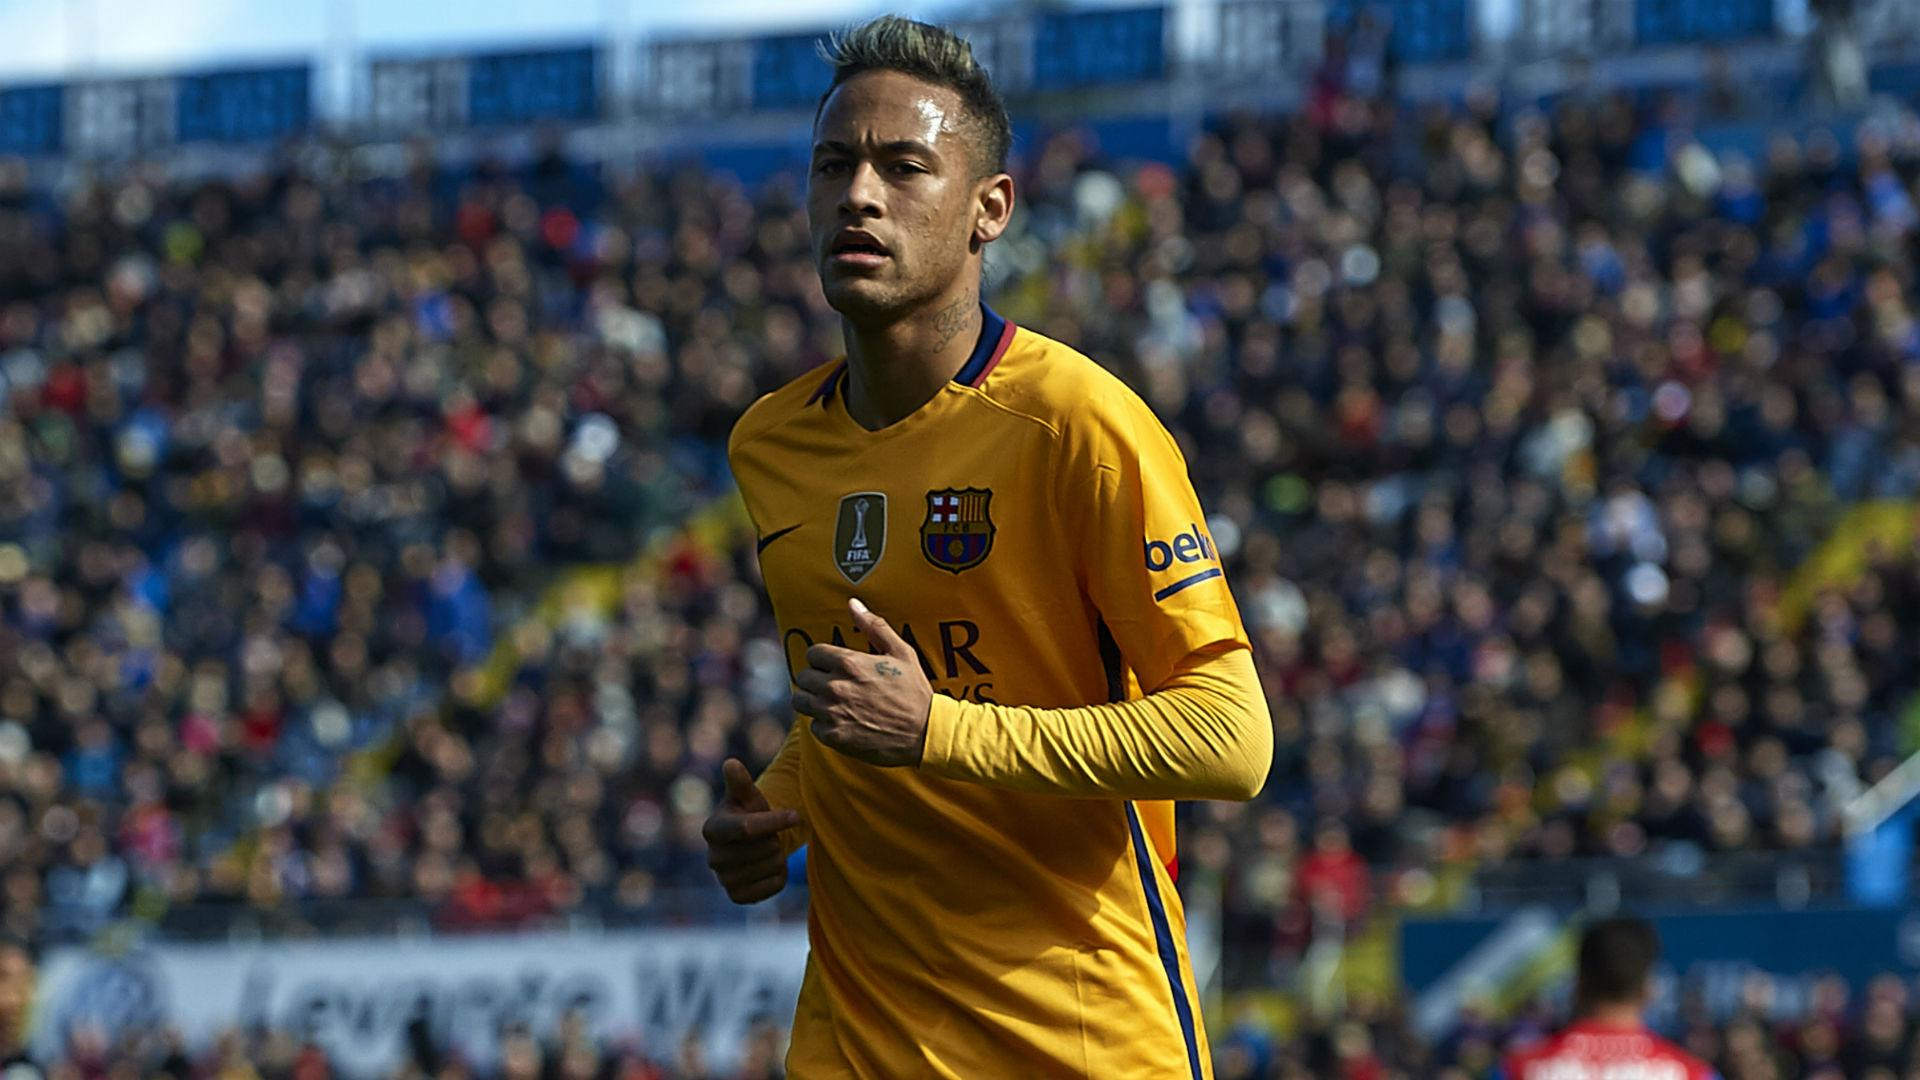 Neymar will be at Barcelona for years, claims director